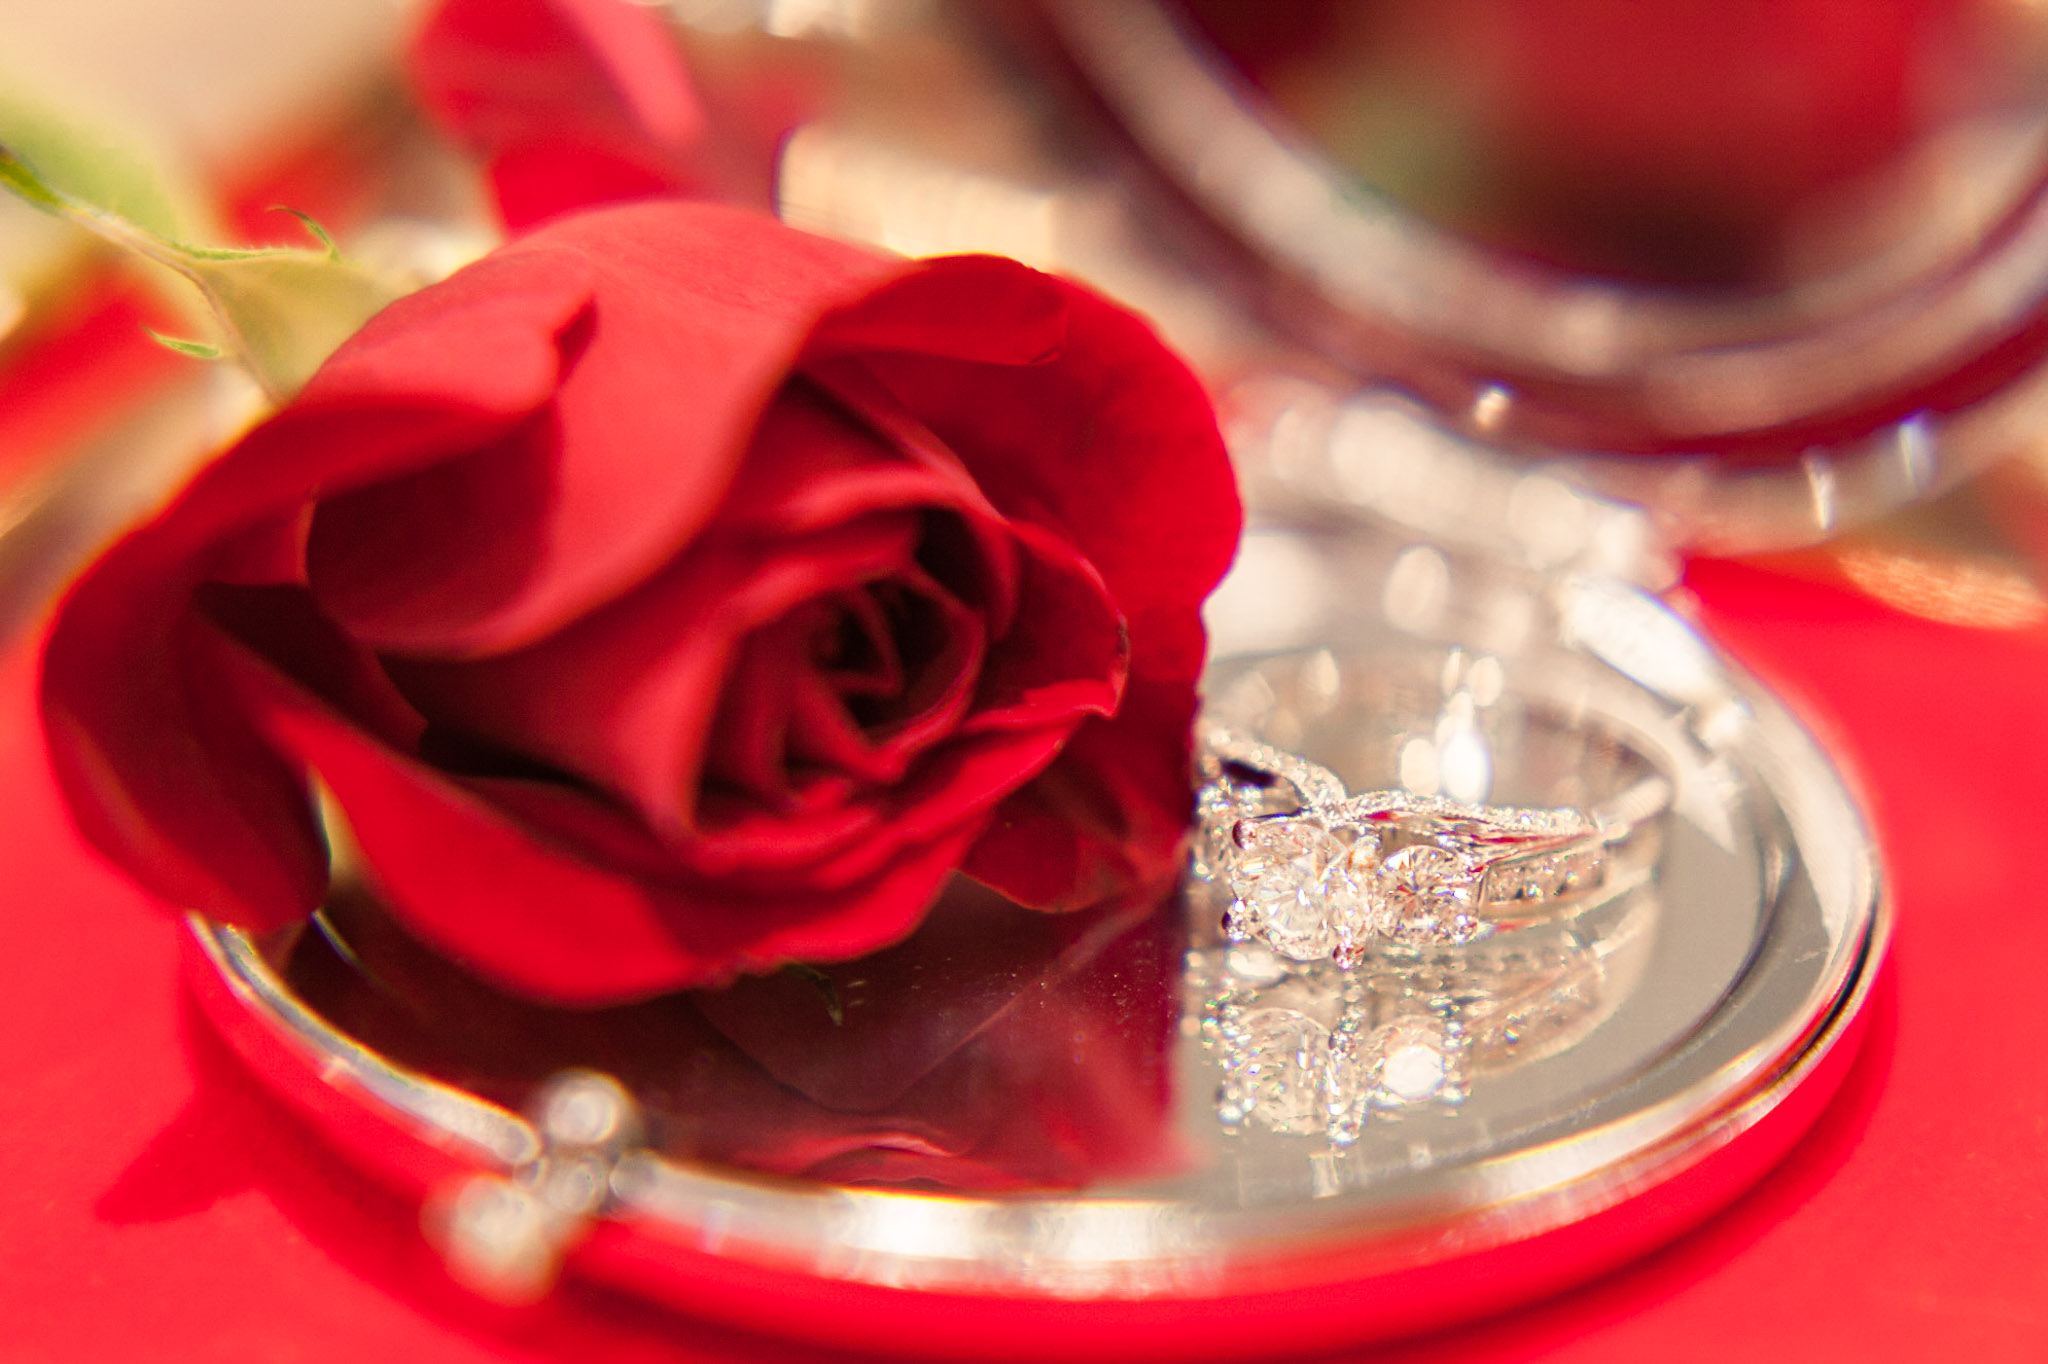 rose and wedding ring